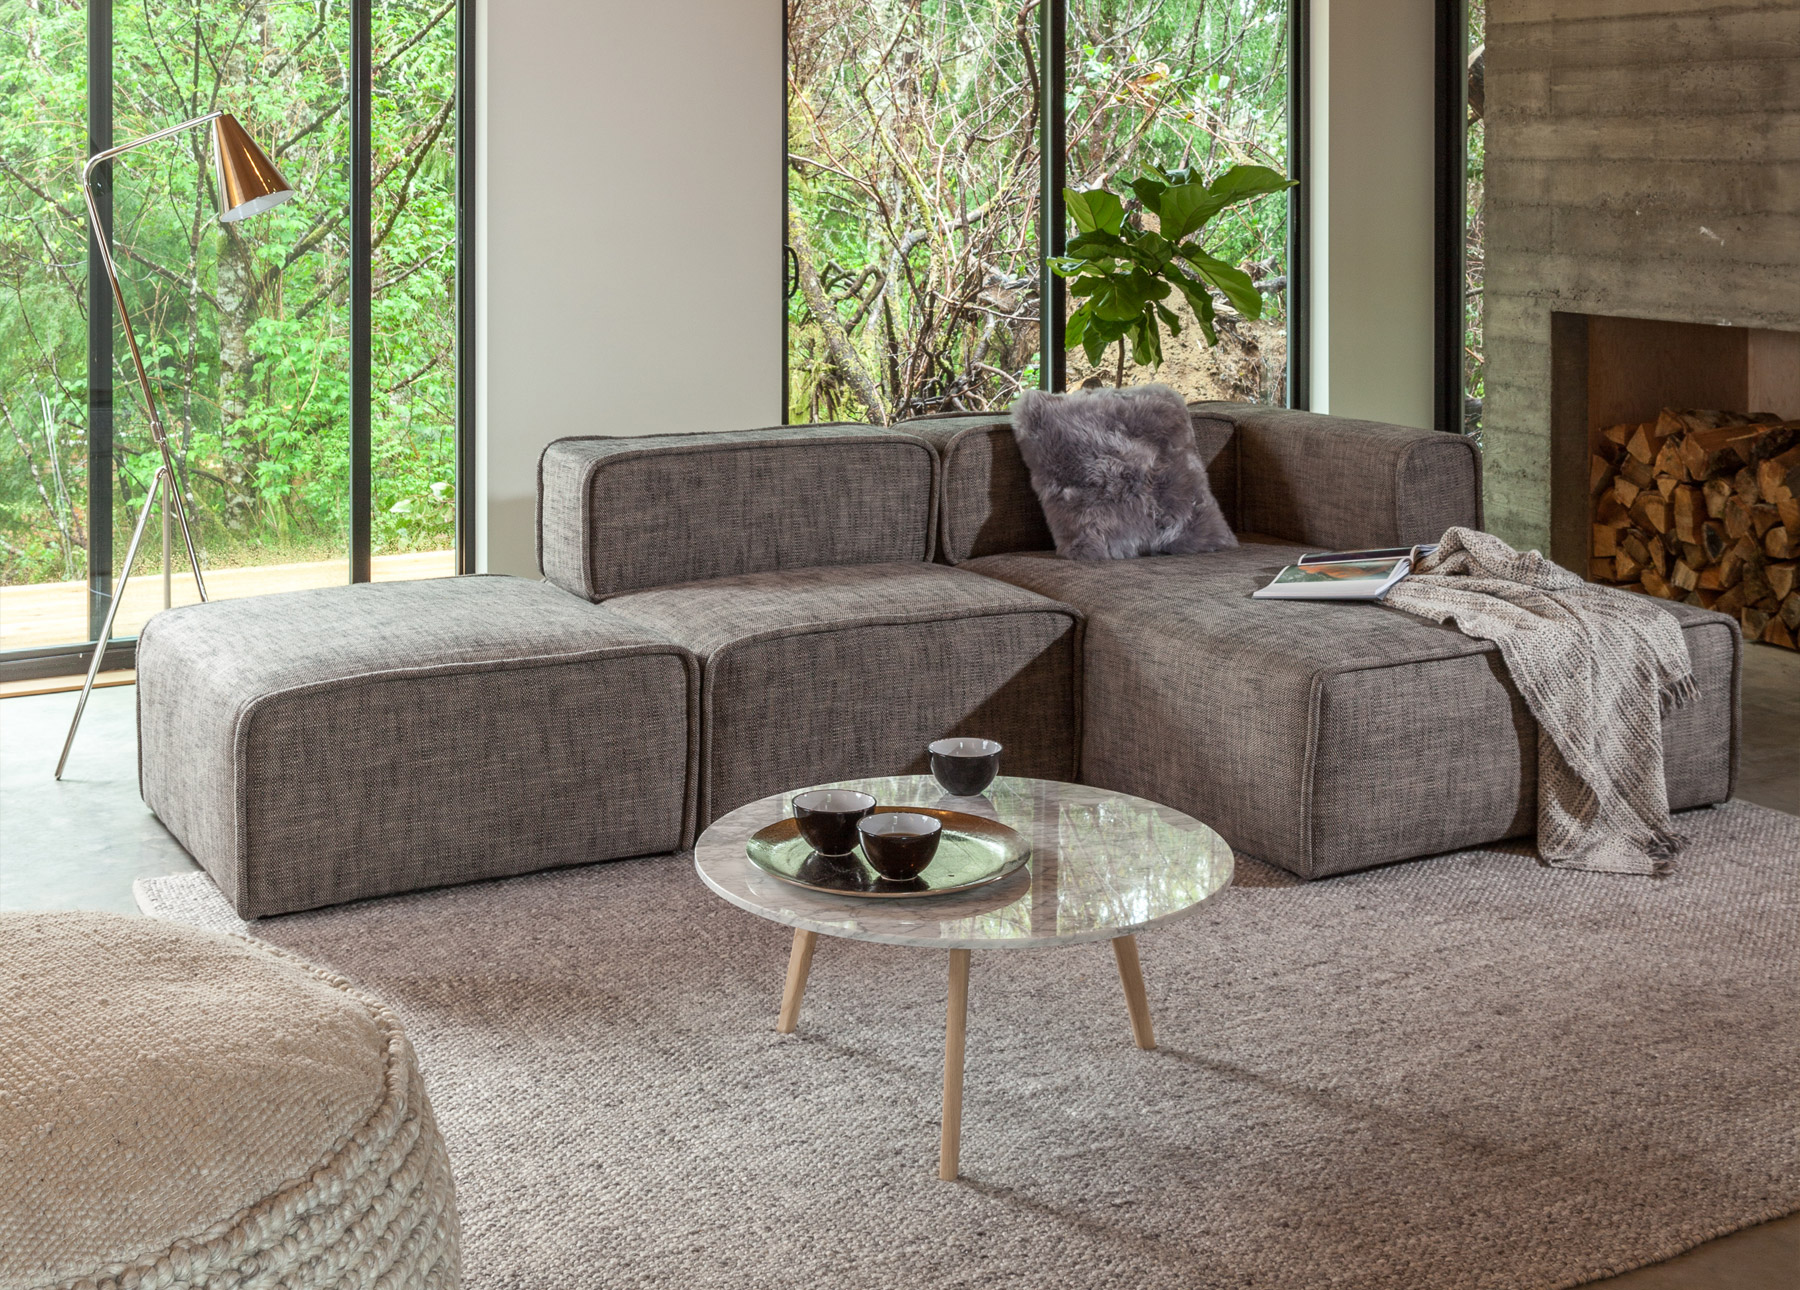 Dedicated Apartment Width Sofas And Customizable, Modular Sectionals Like  Quadra Work Great For Small Living Spaces.